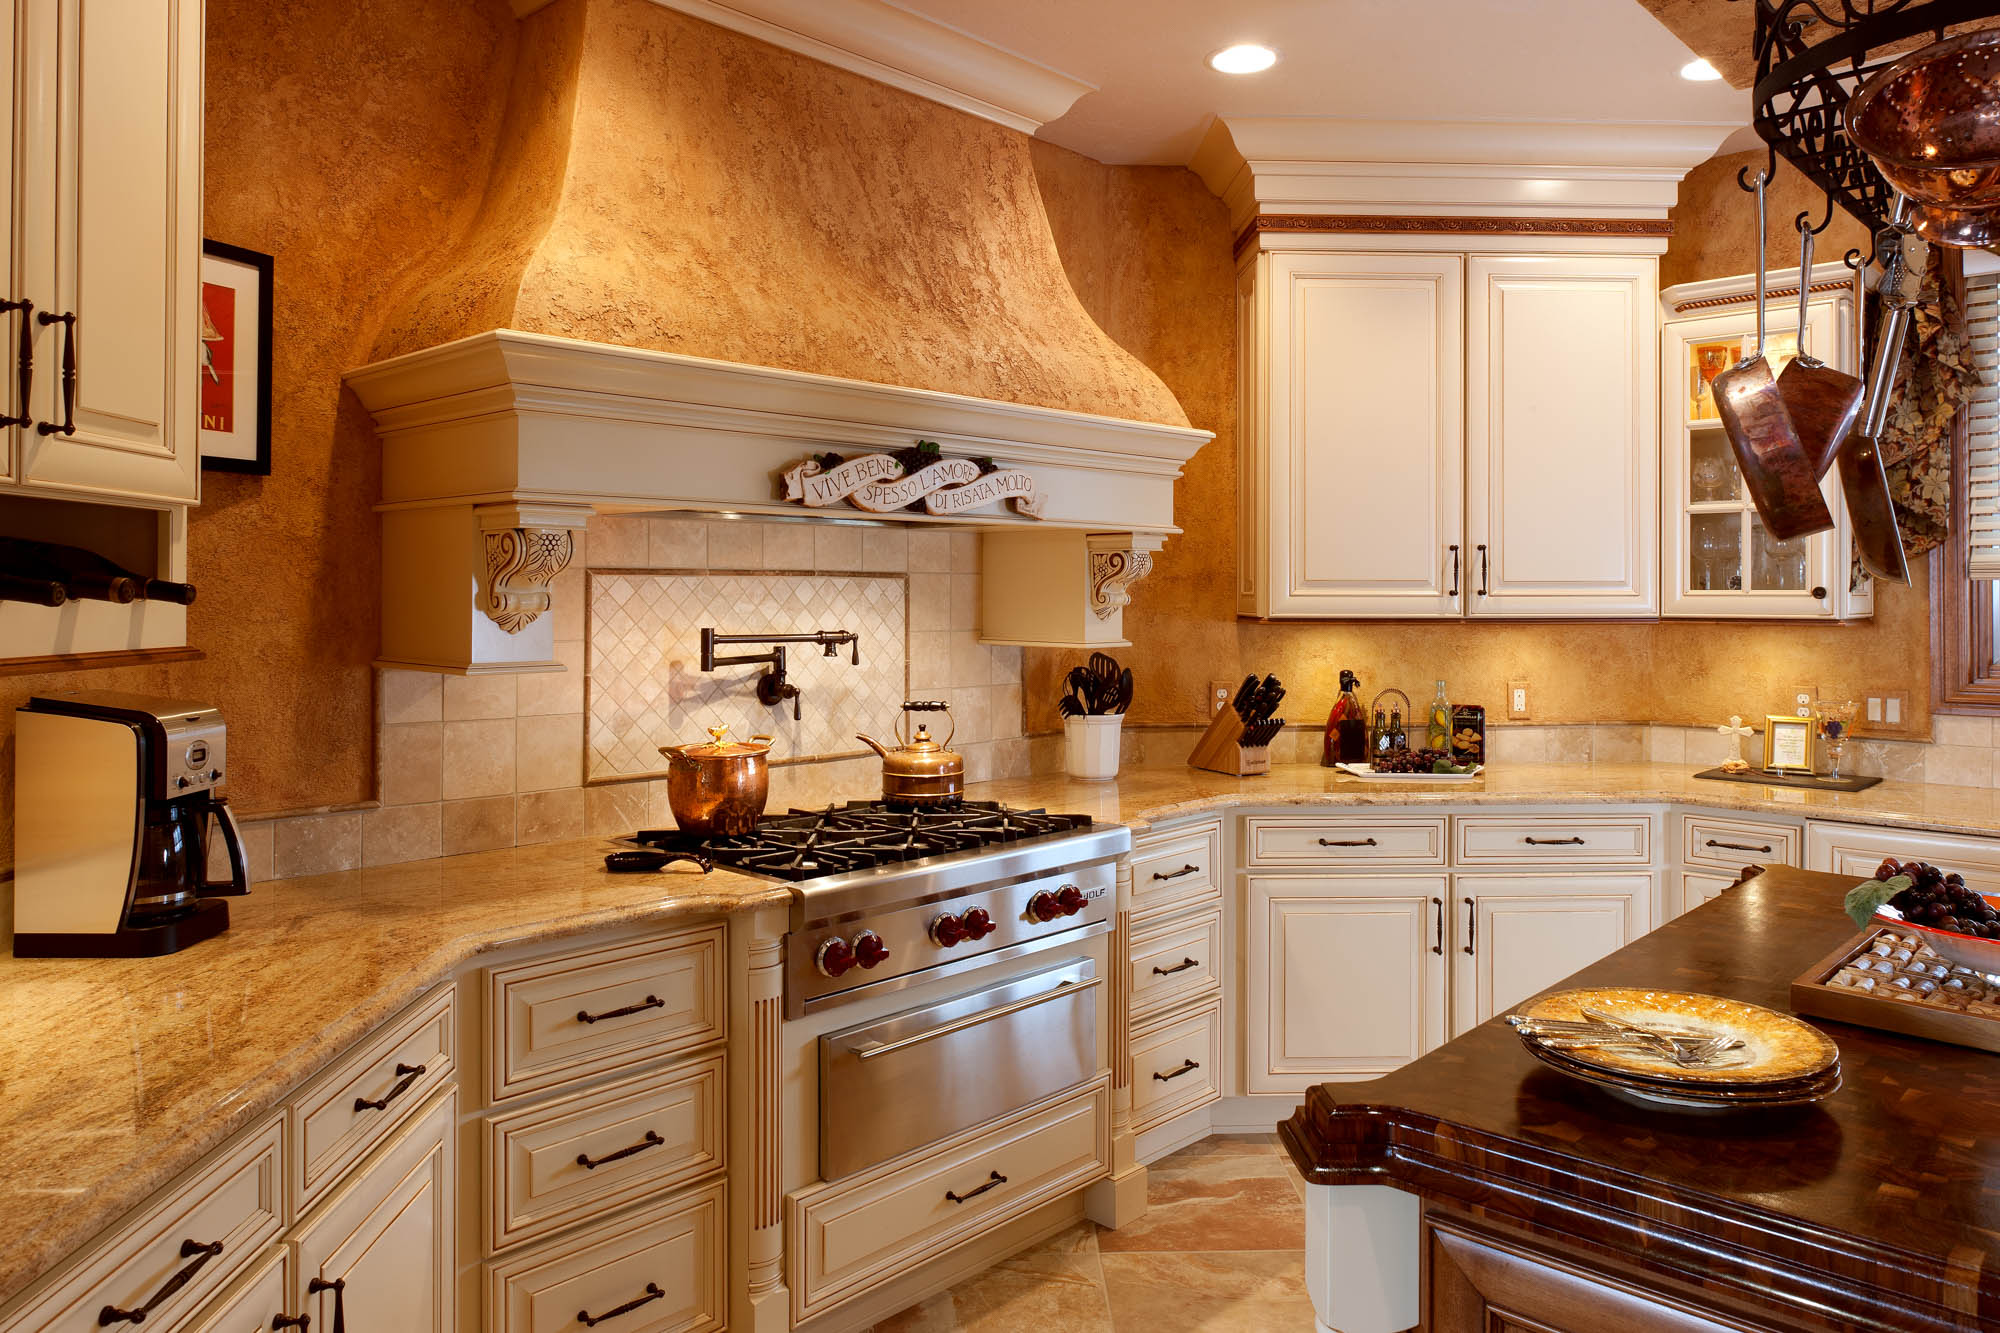 Showplace Kitchen Cabinets Showplace Cabinets Reviews Design For Home